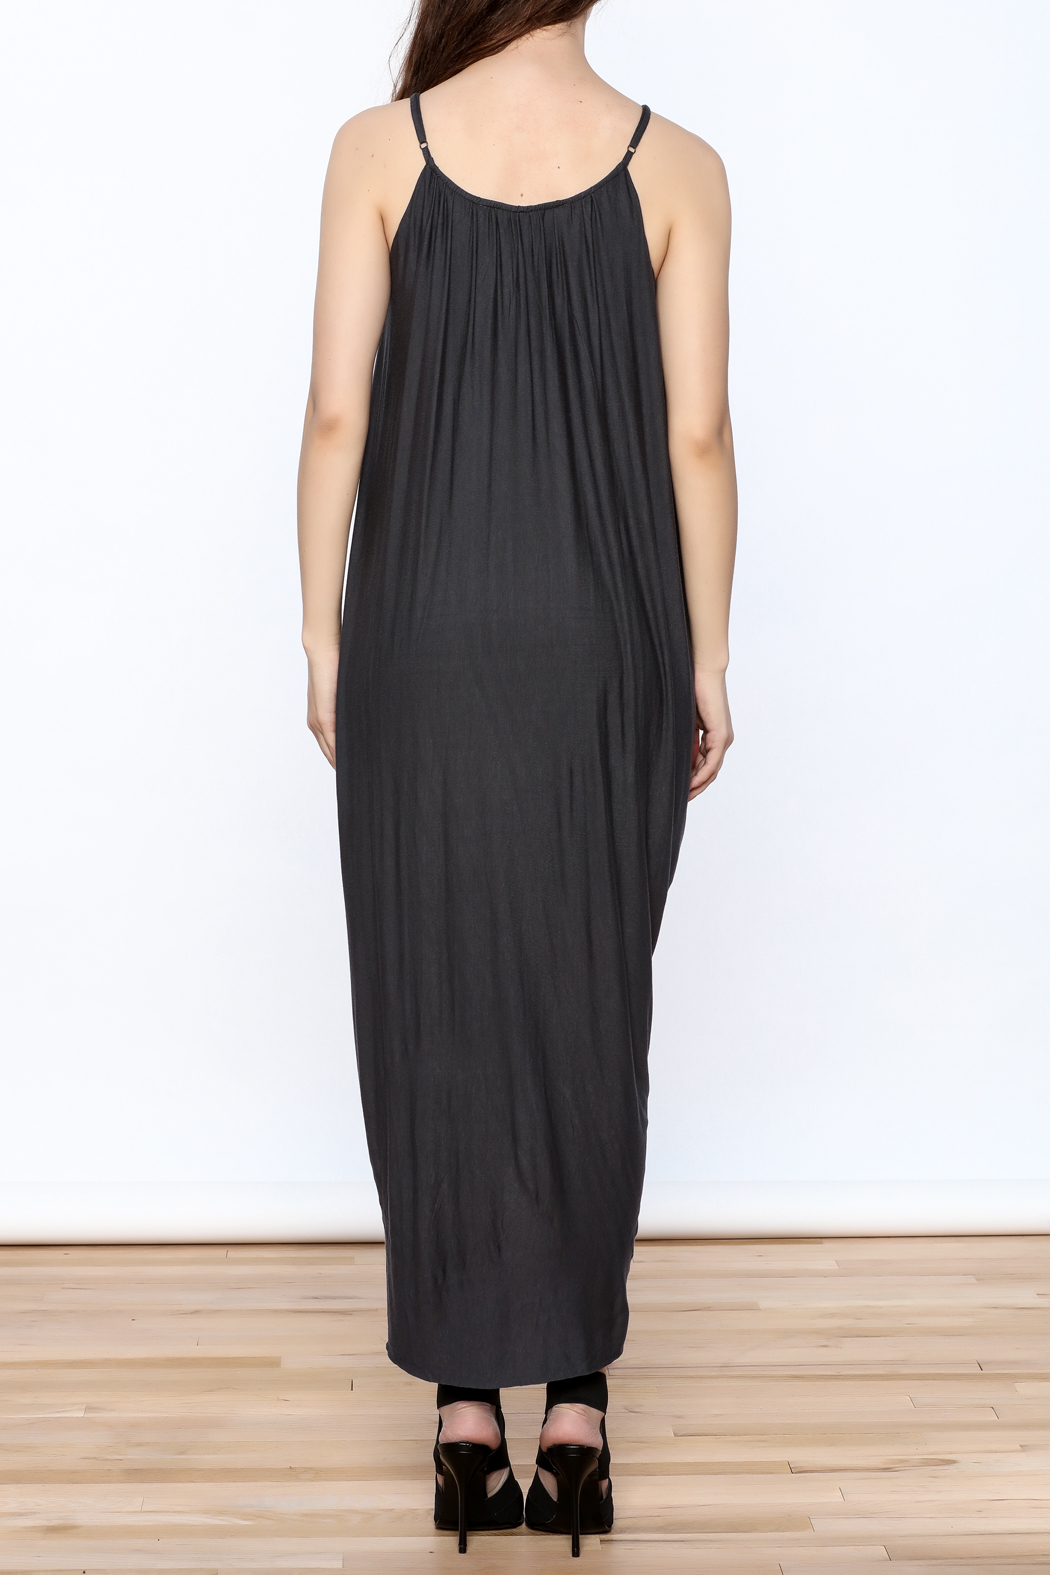 HYFVE Charcoal Drapey Sleeveless Dress - Back Cropped Image